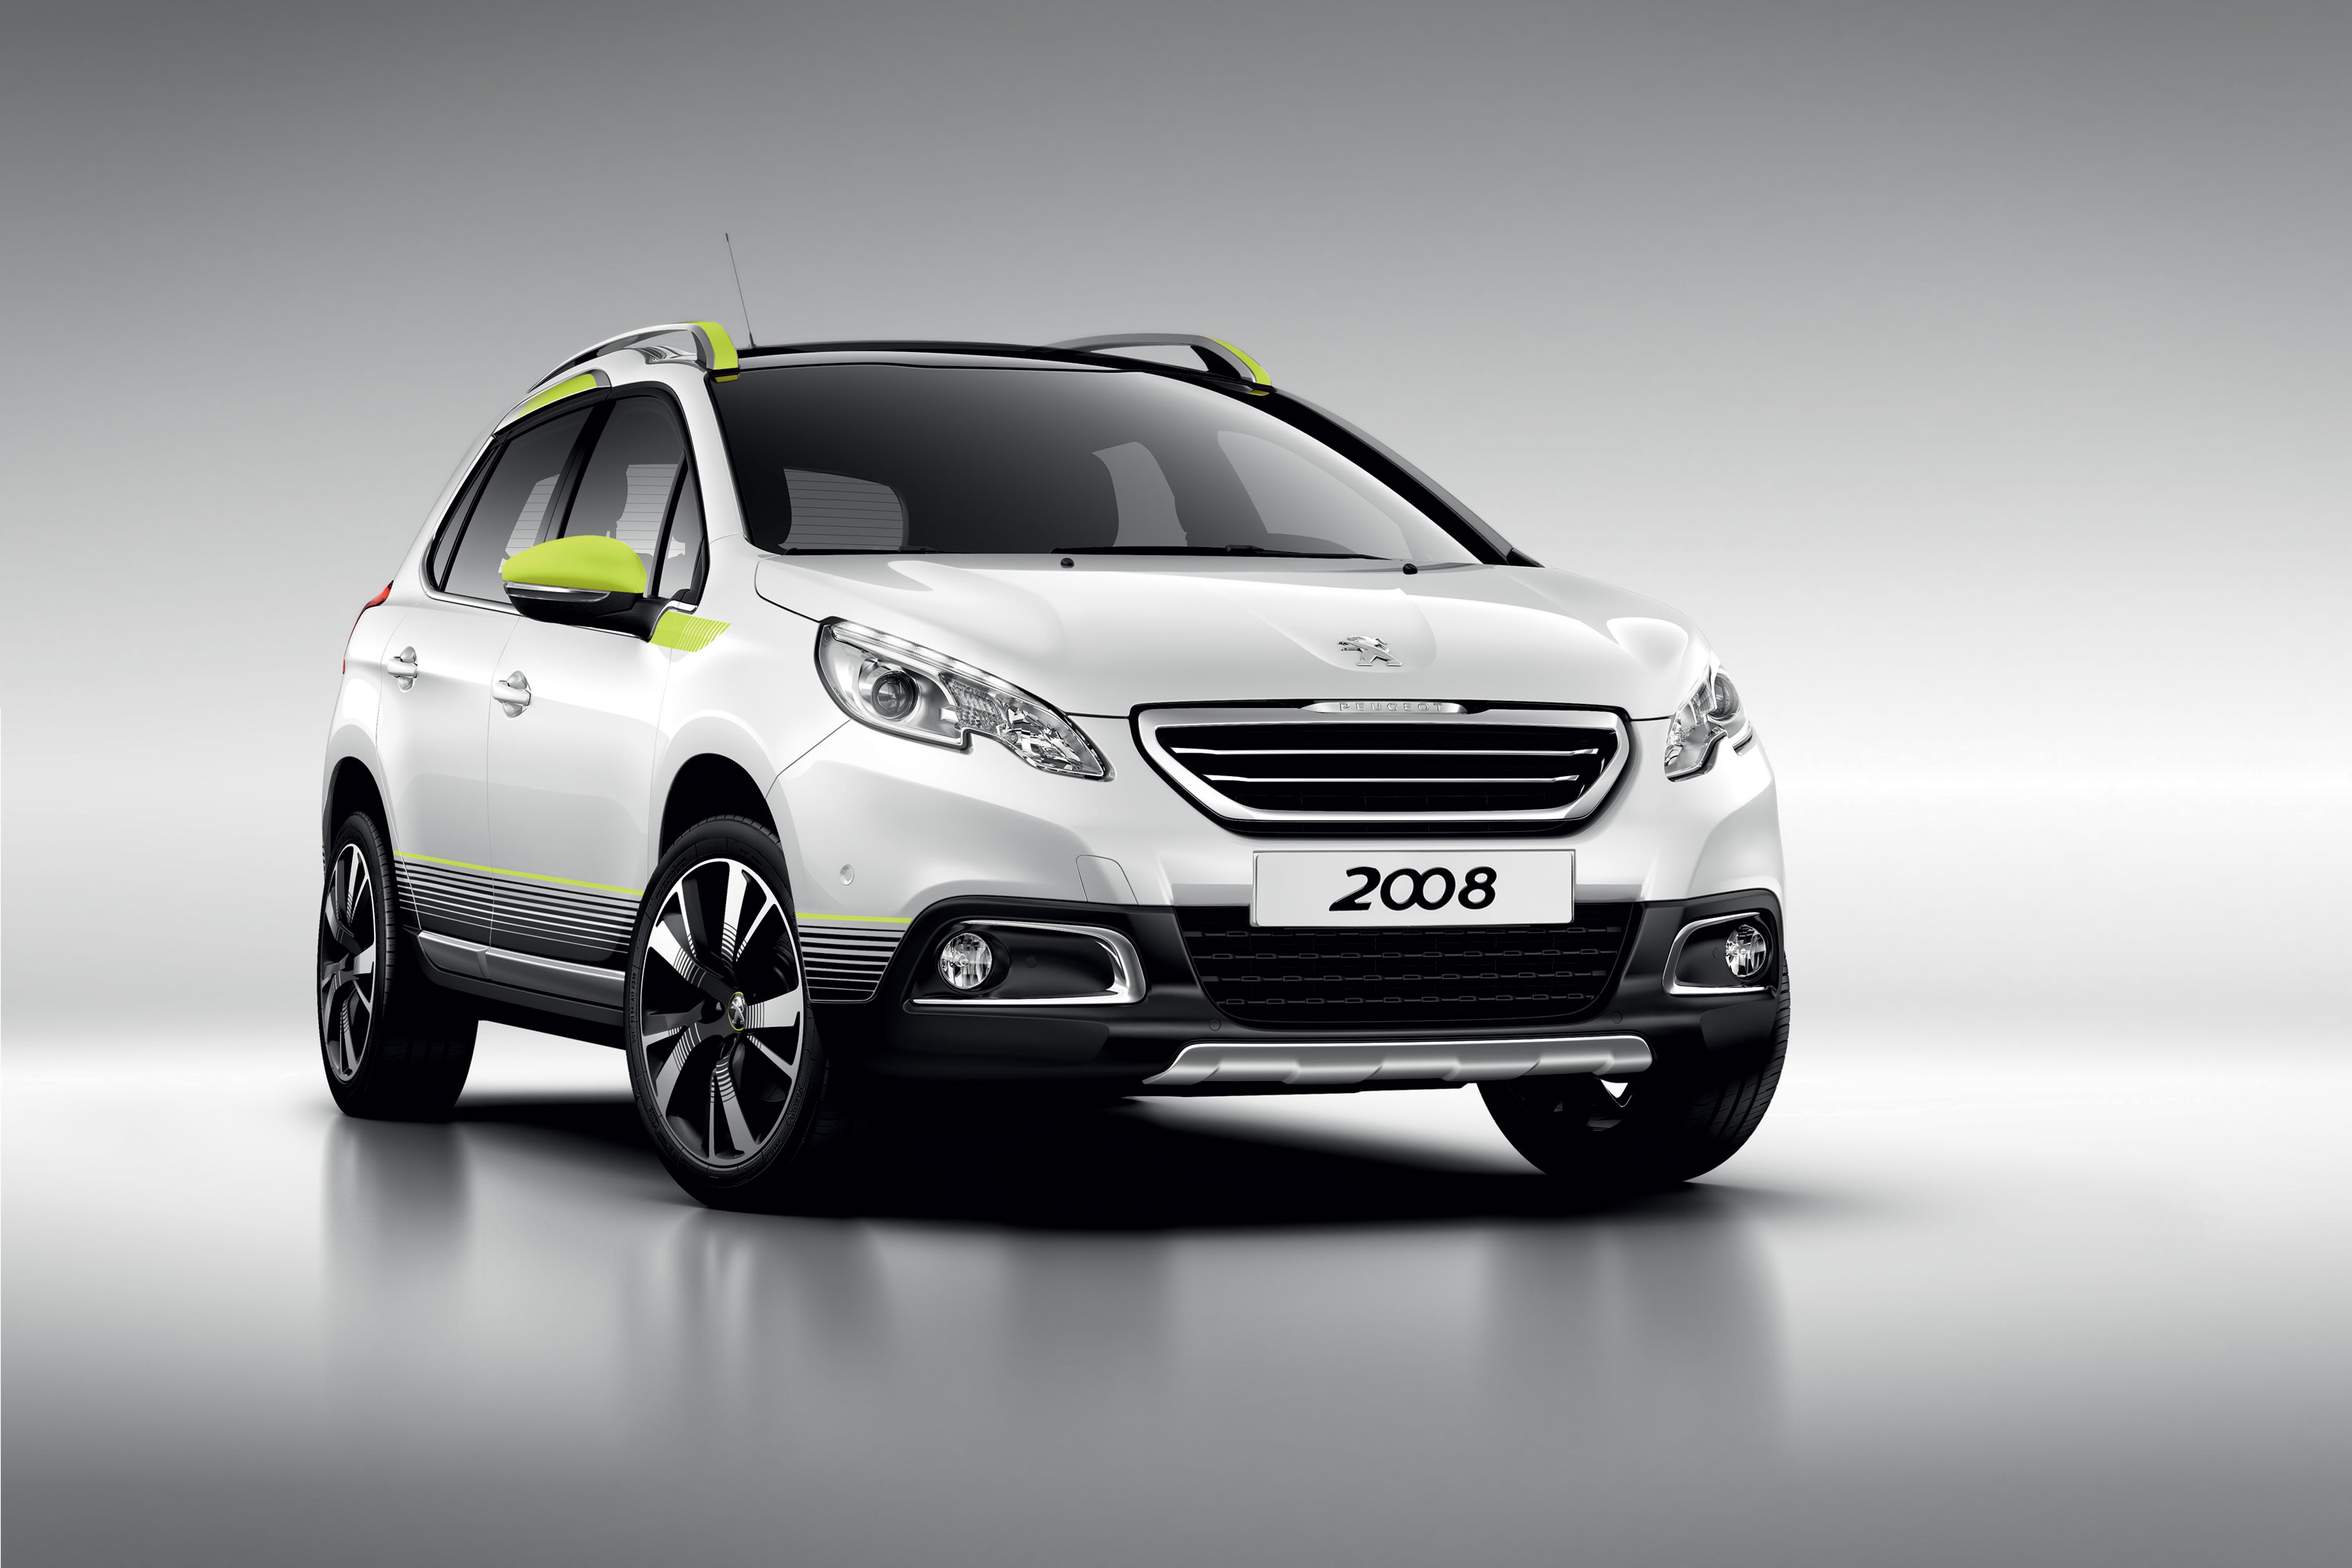 2015 Peugeot 2008 Prices in UAE, Gulf Specs & Reviews for Dubai ...